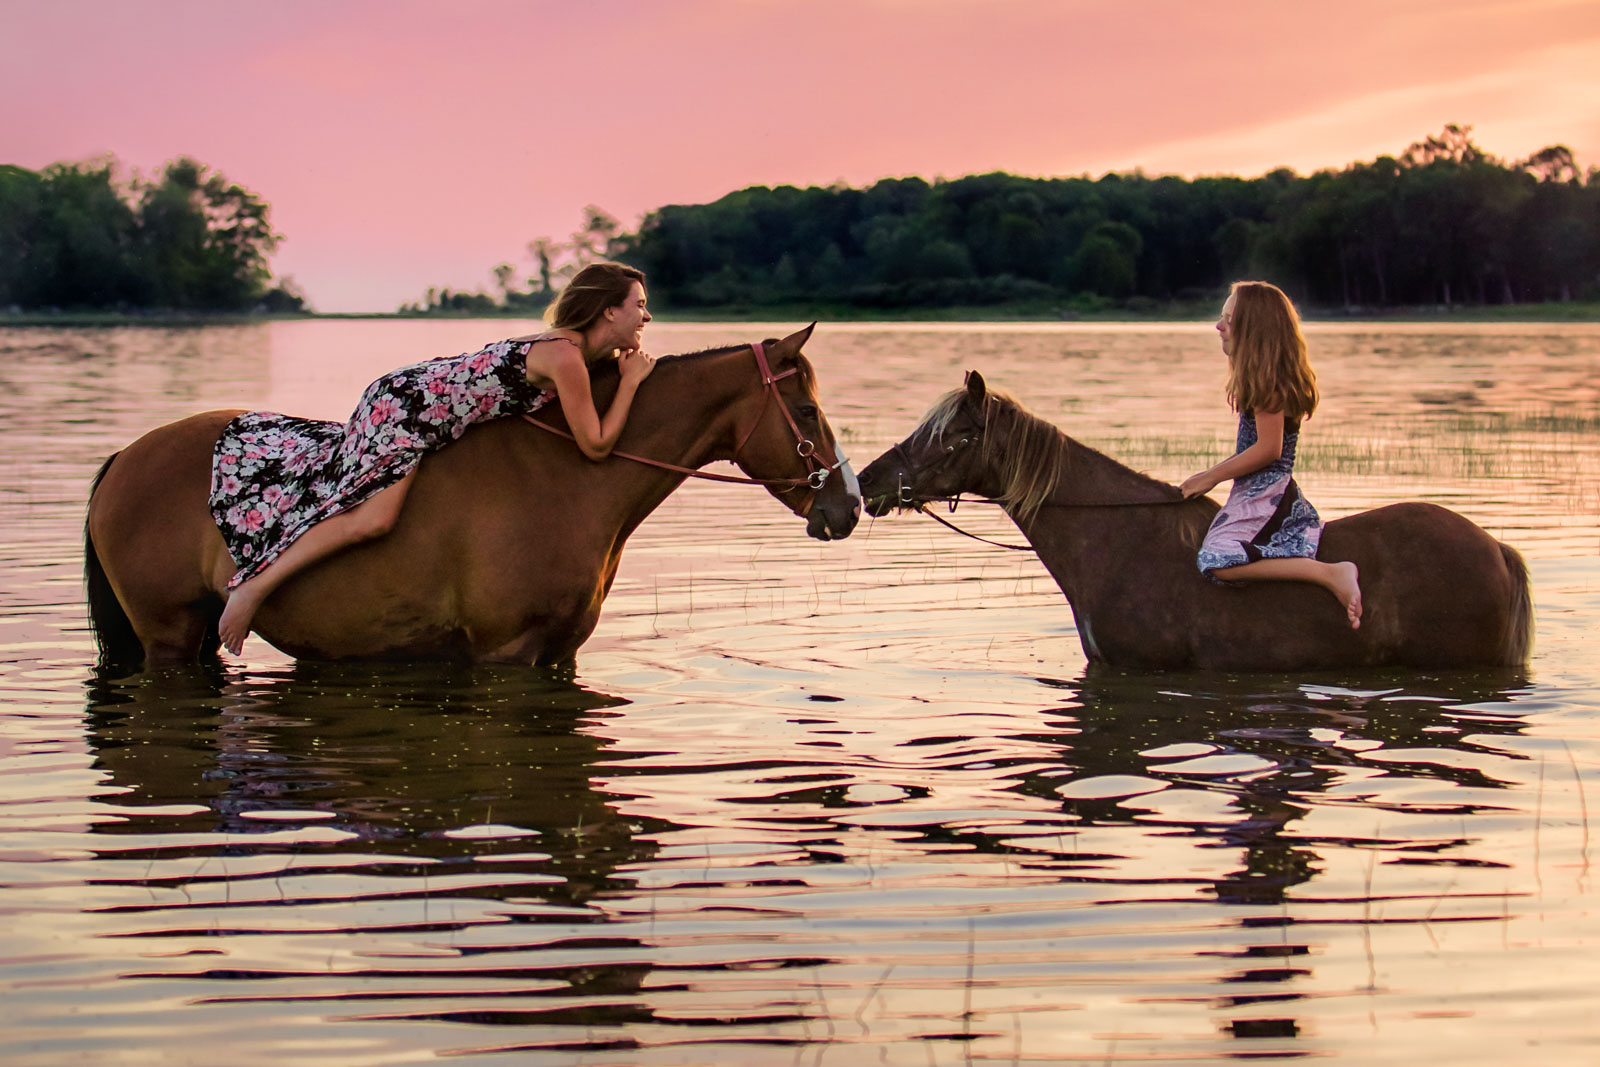 Mother Daughter Horse Riding River Sunset Dusk Annick Paradis Photographe Quebec Clickin Moms Blog Helping You Take Better Pictures One Day At A Time